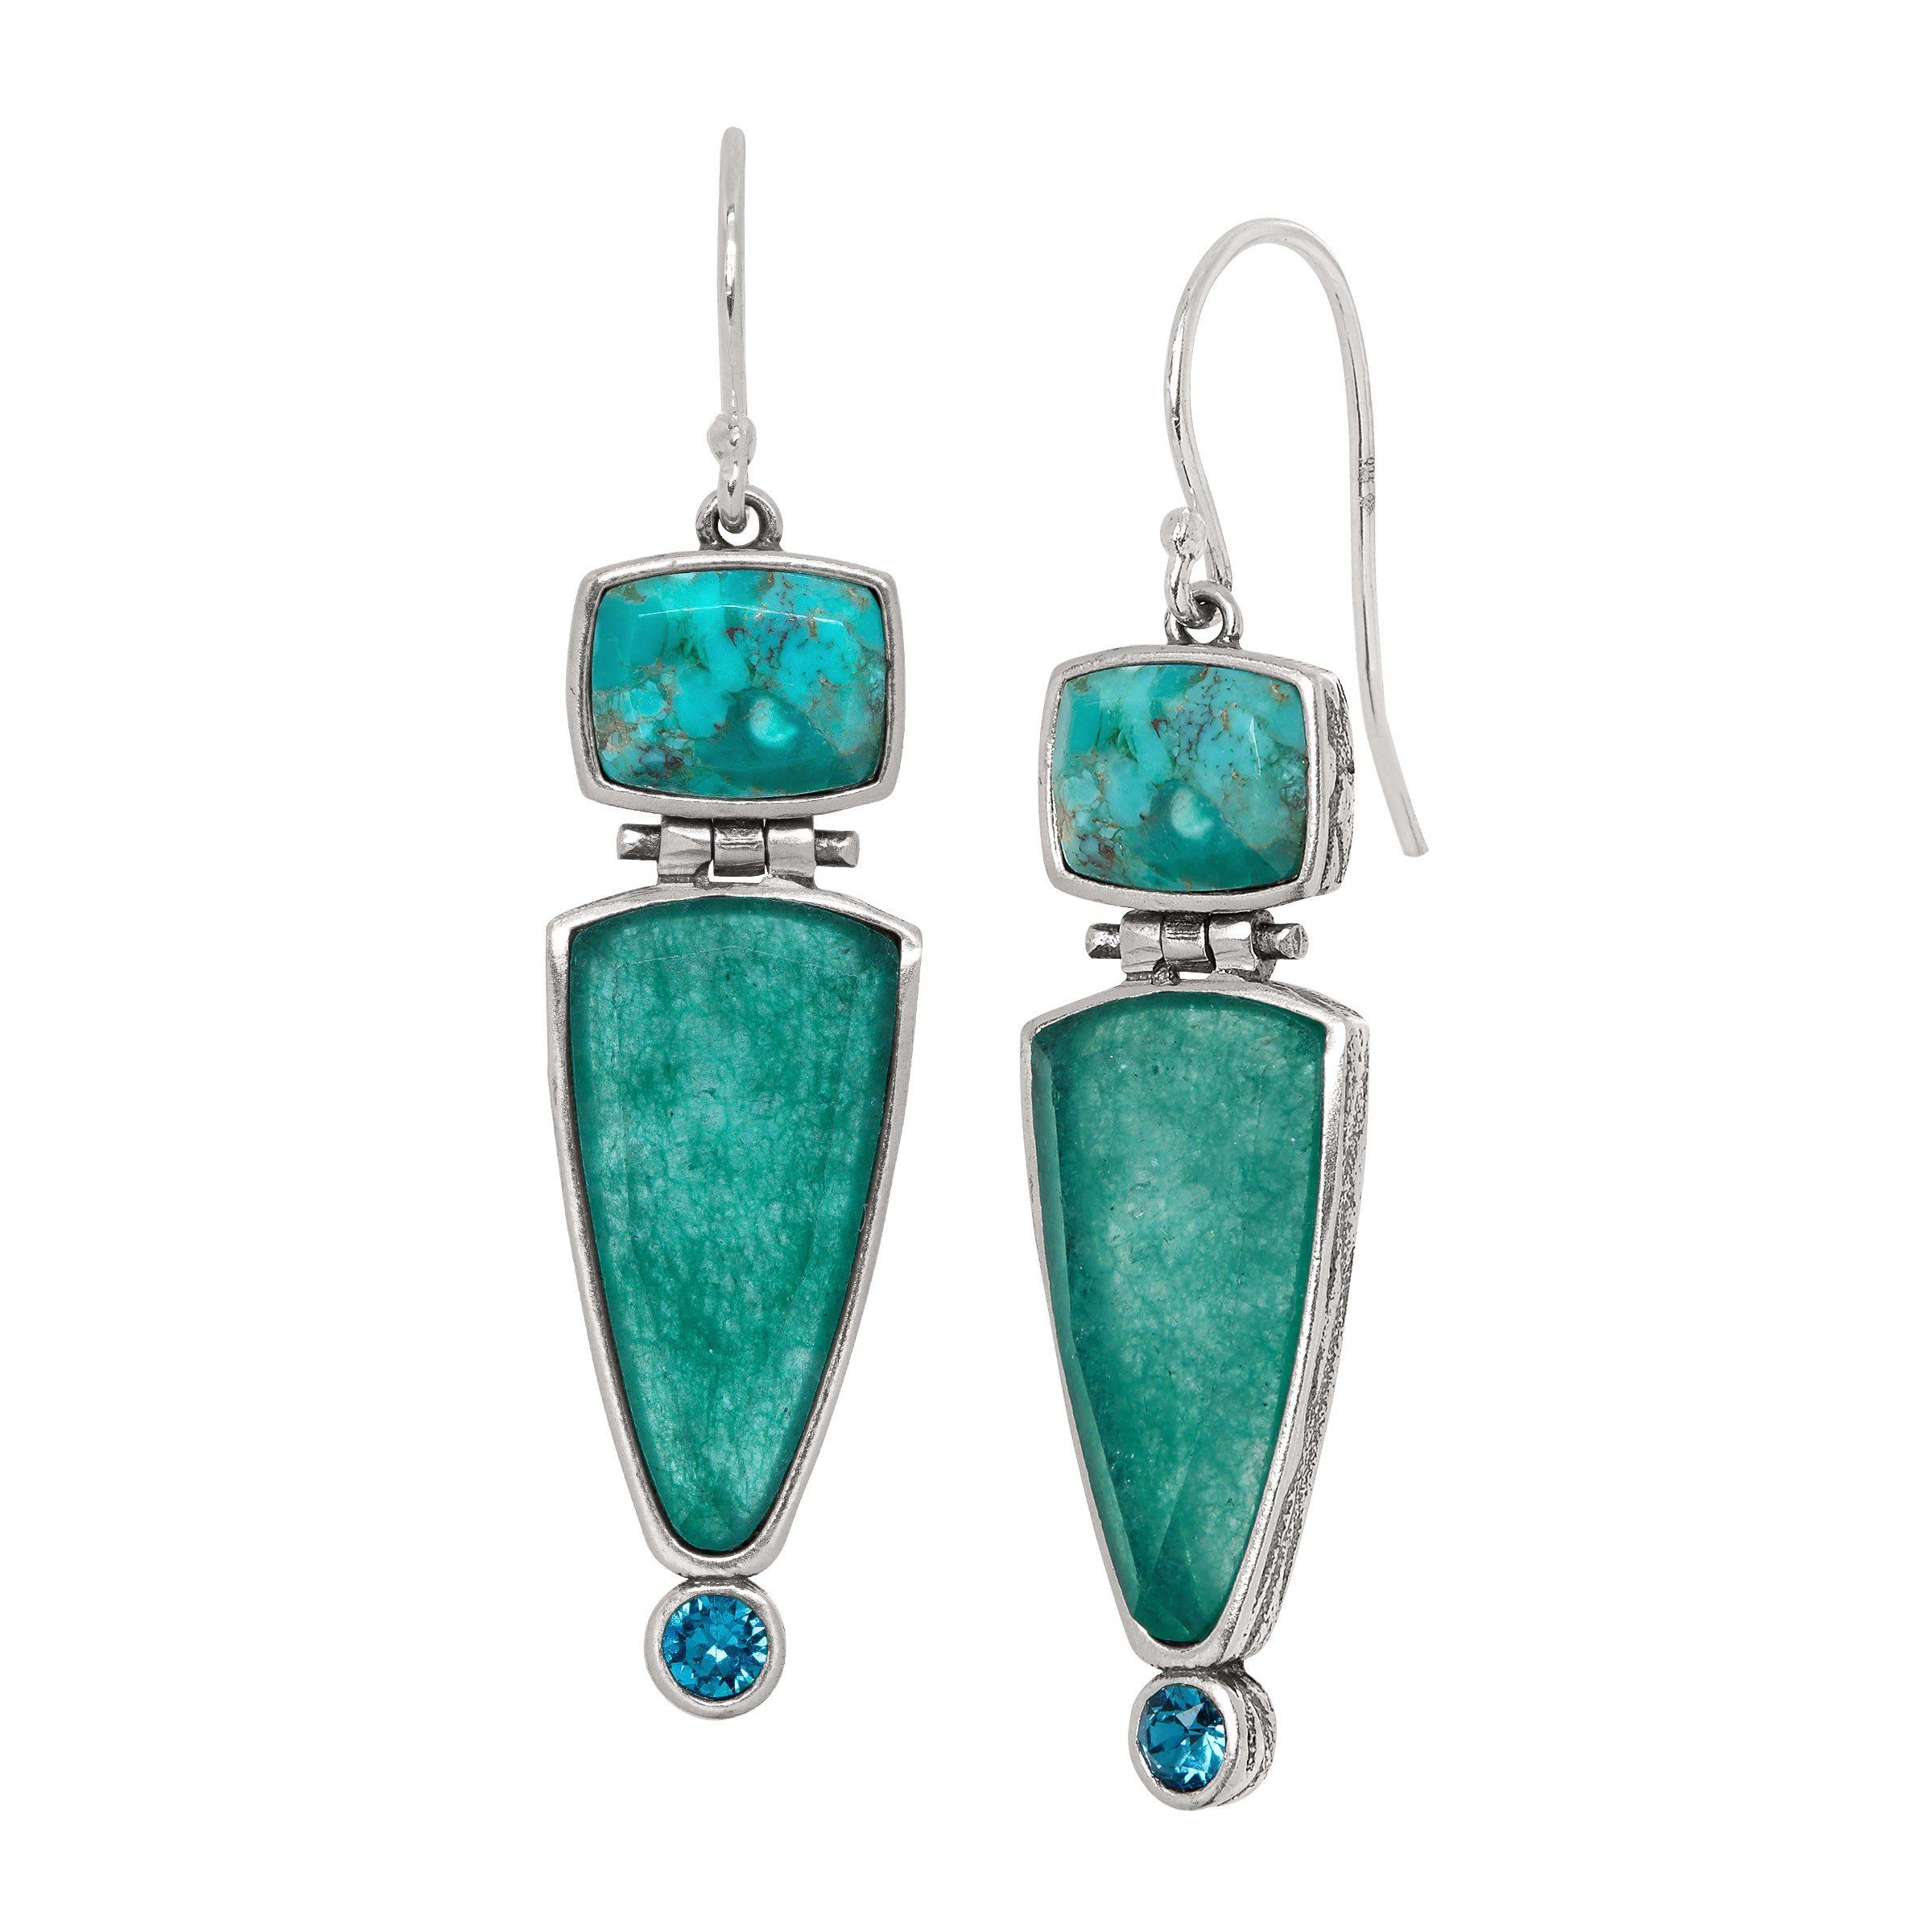 Silpada 'True Colors' Compressed Turquoise and Quartzite Drop Earrings with Swarovski Crystals in Sterling Silver